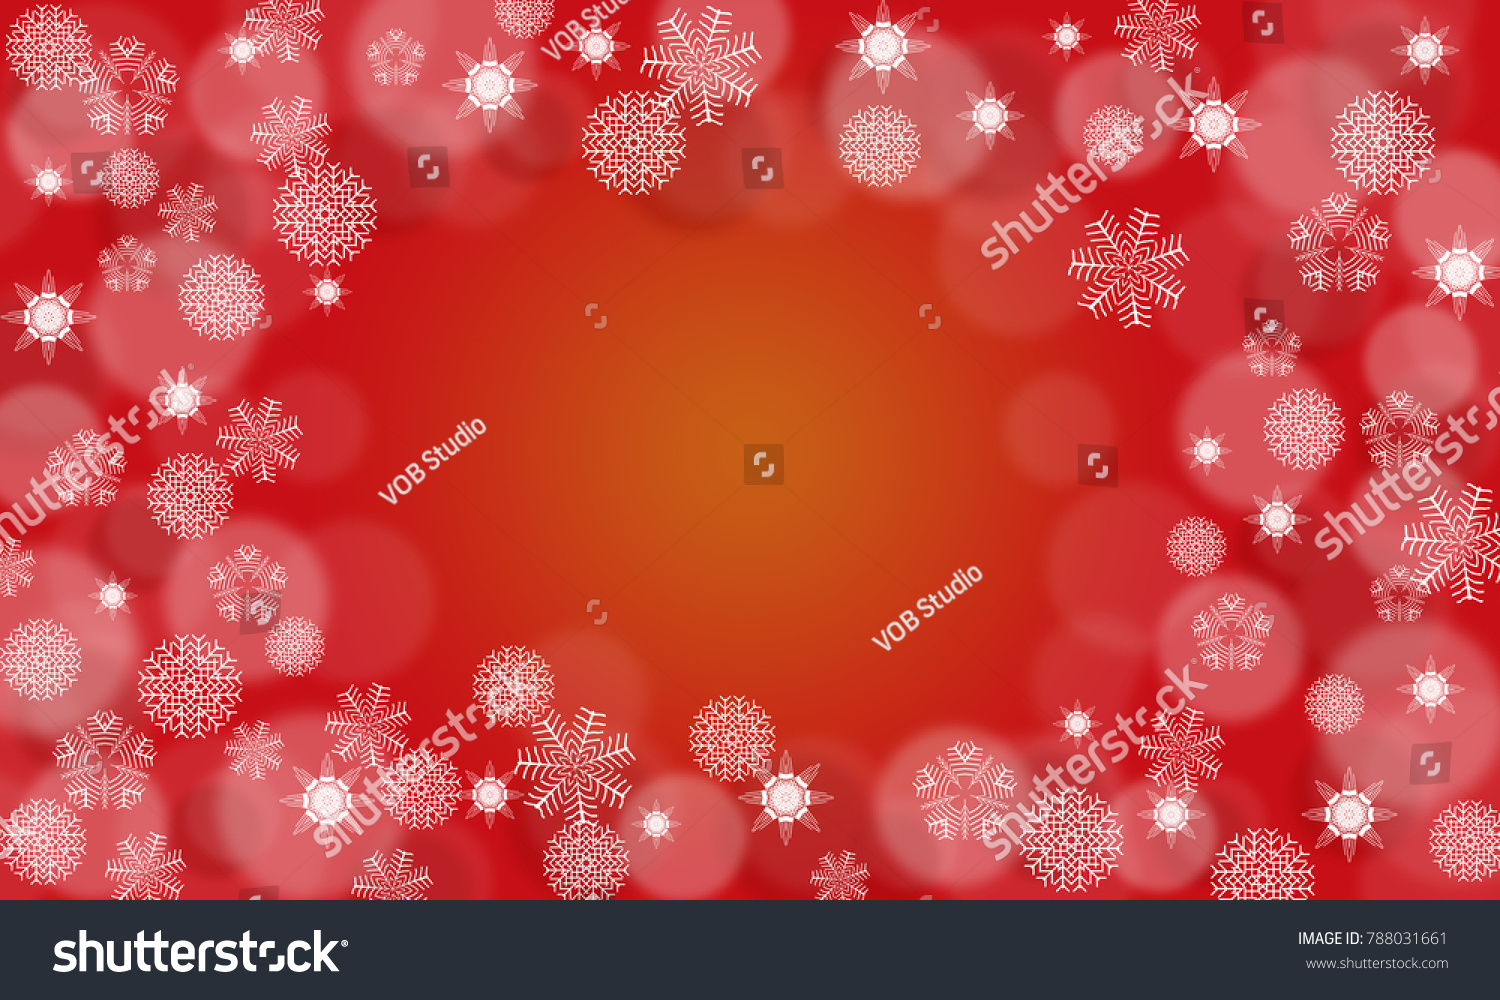 New Year's background design for the desktop #788031661